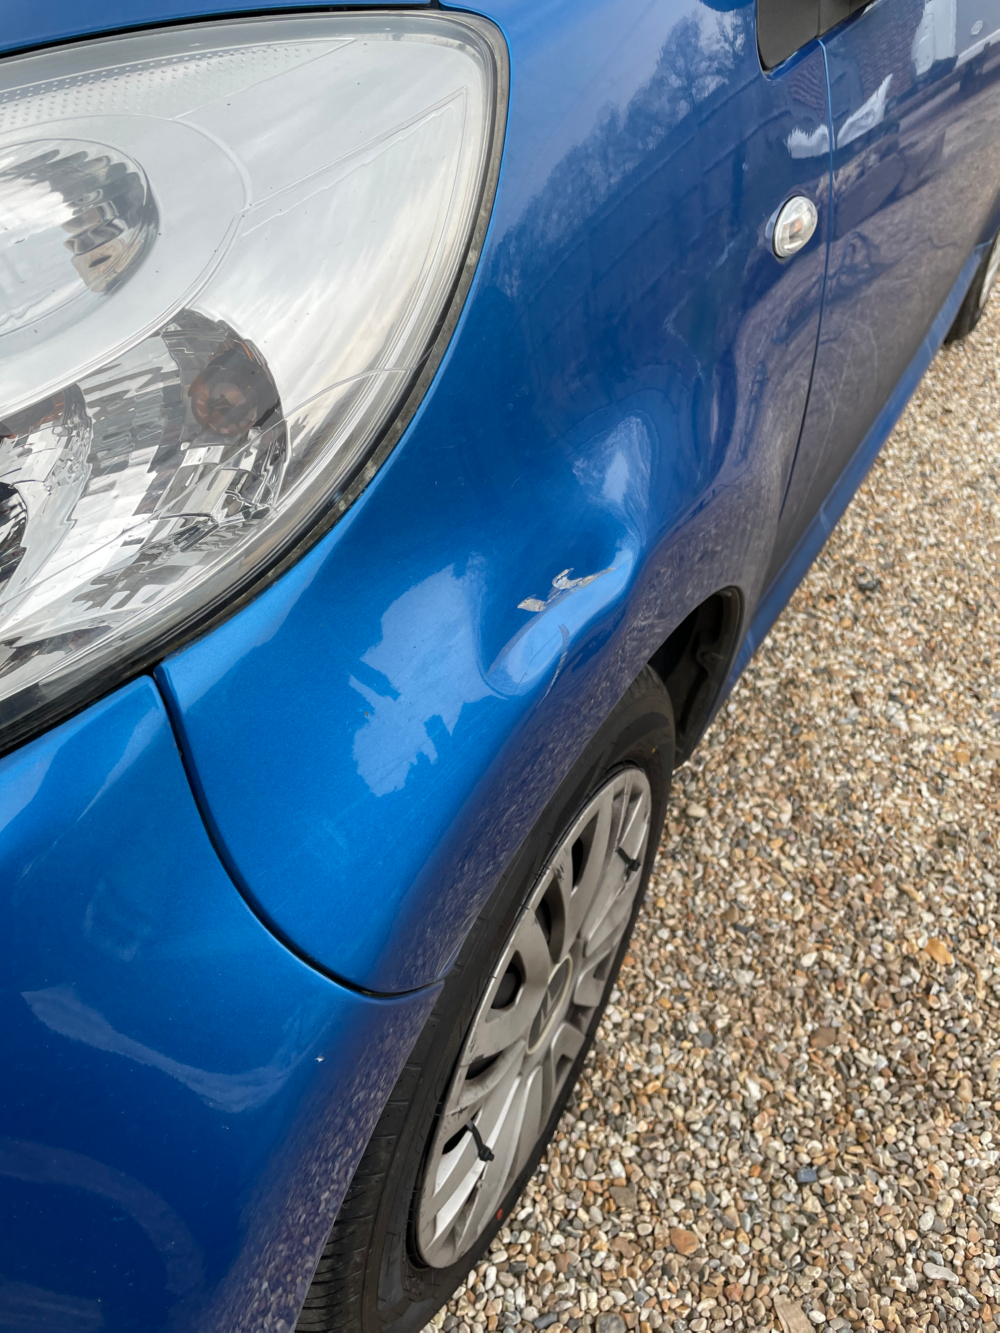 scuff mark and minor dent on car before repair